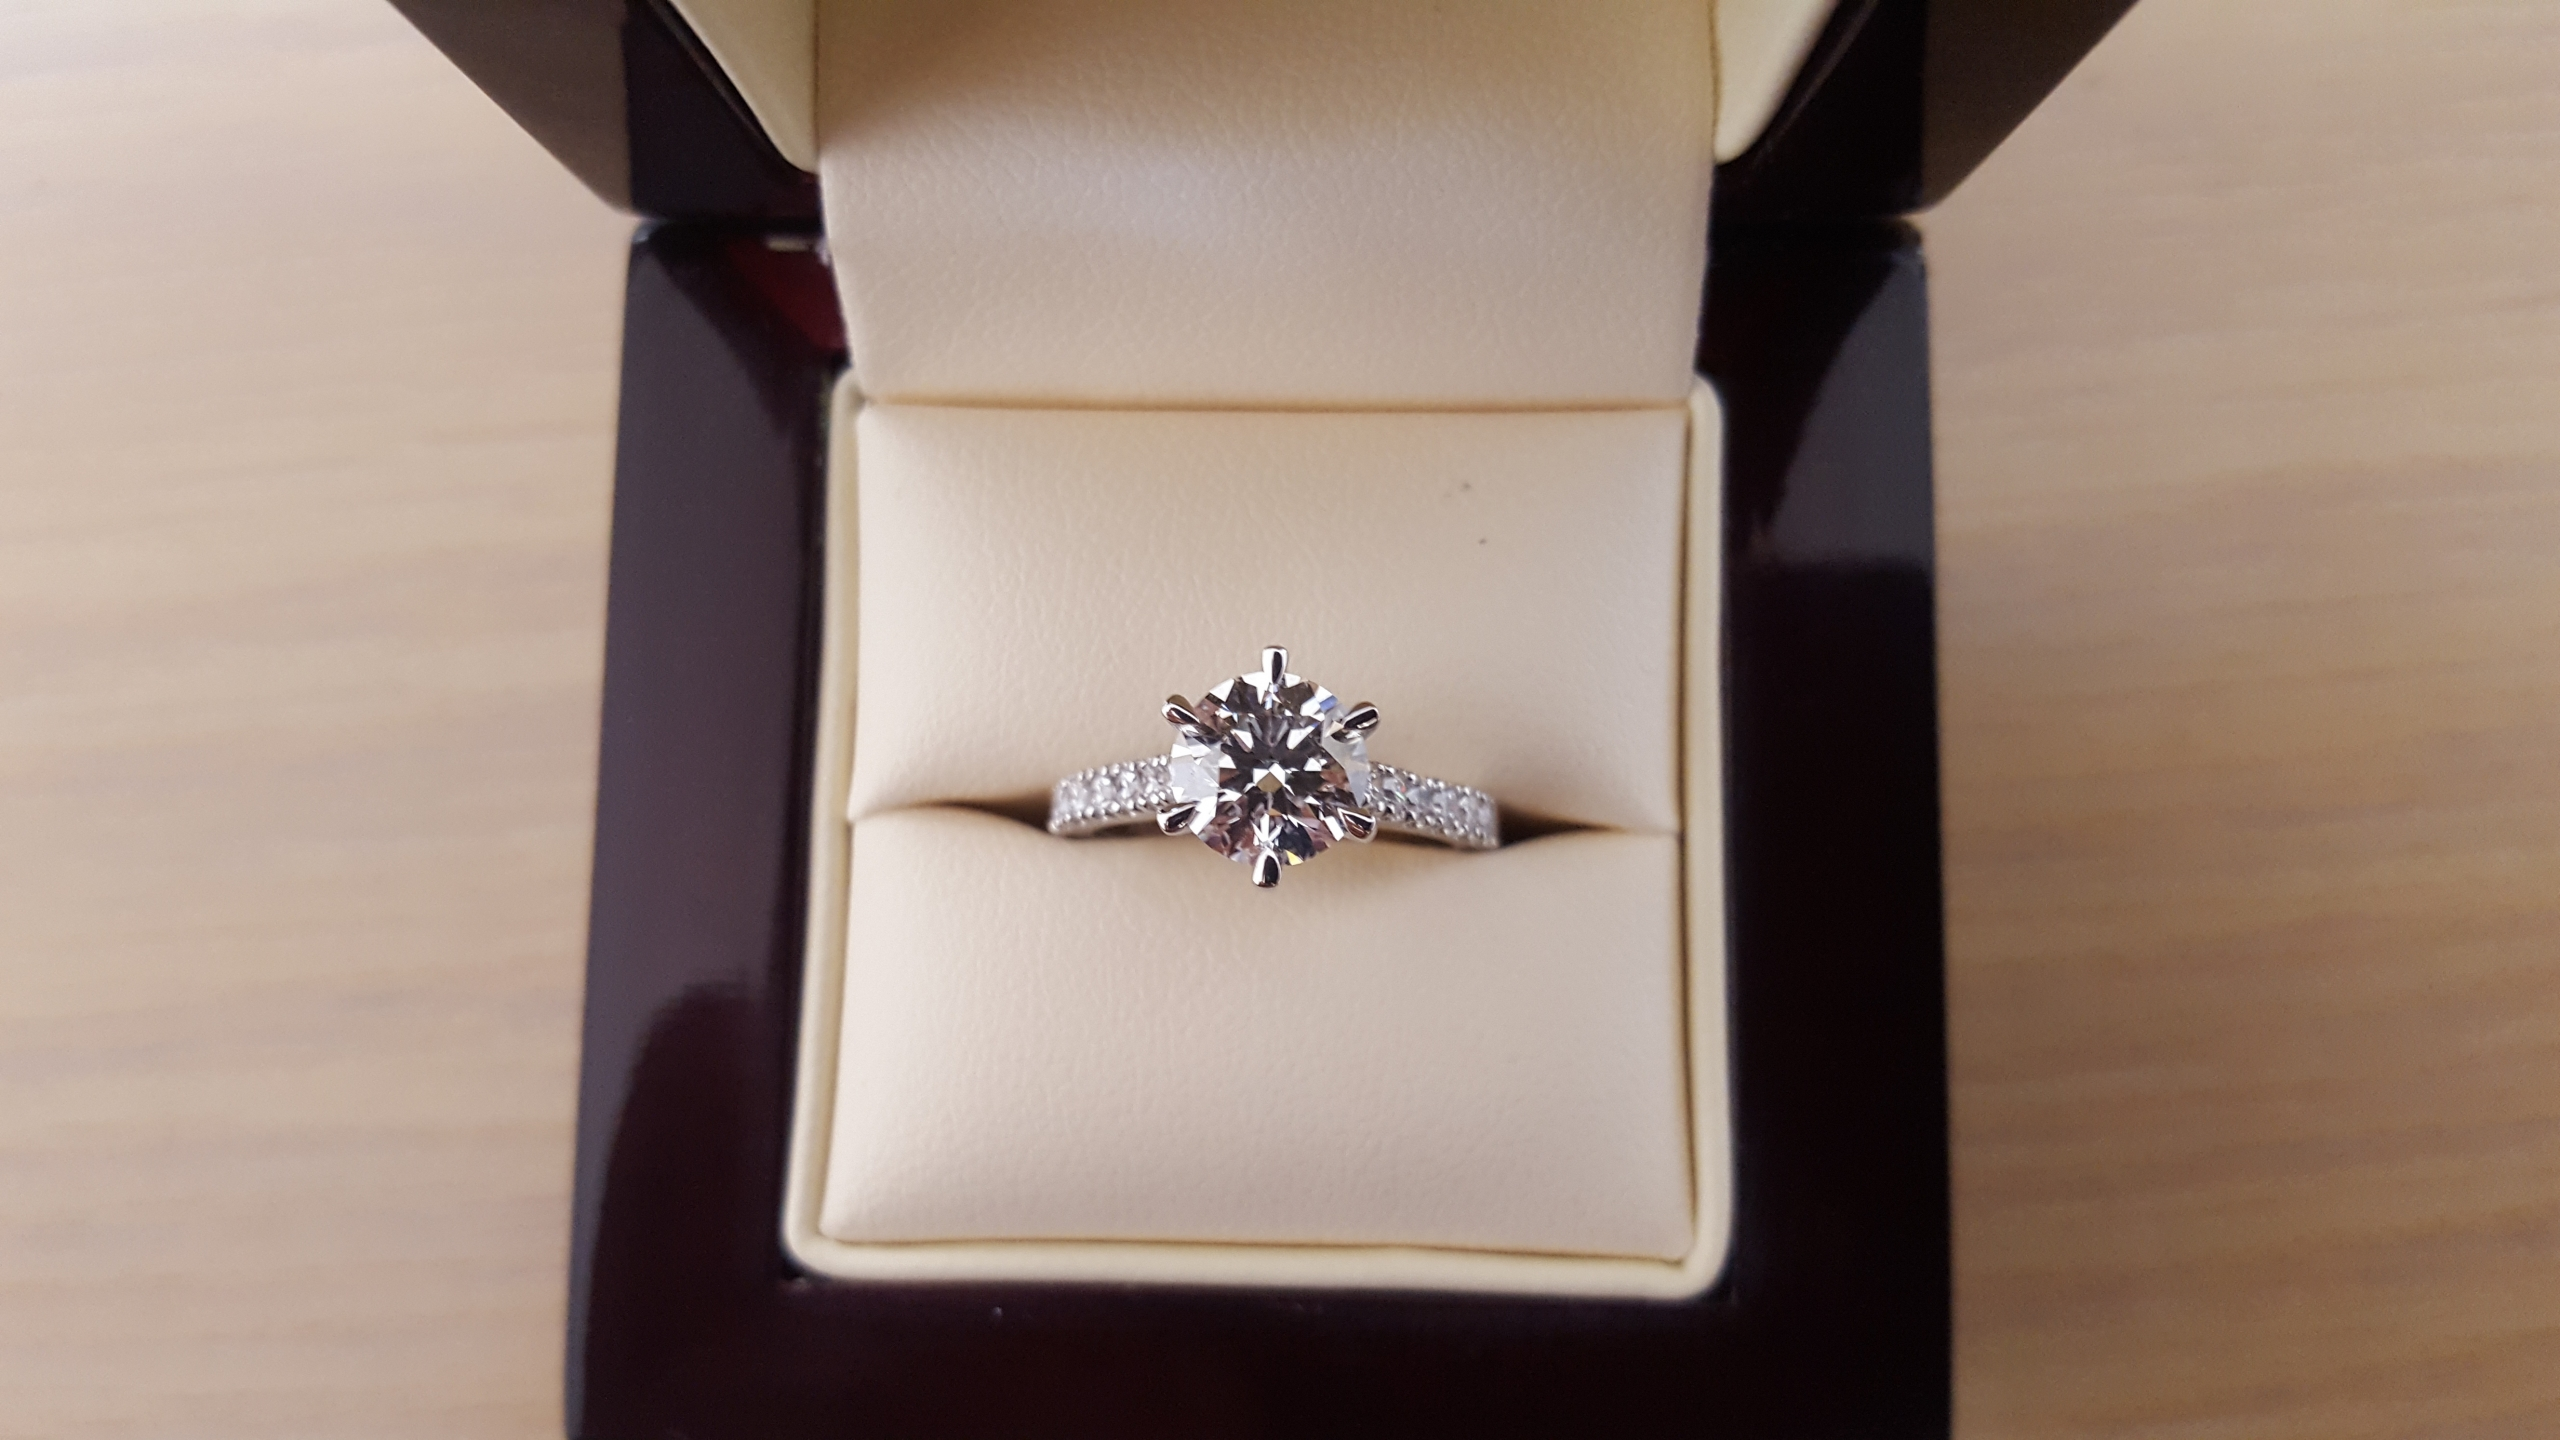 Engagement Ring: 1.52ct diamond set in platinum